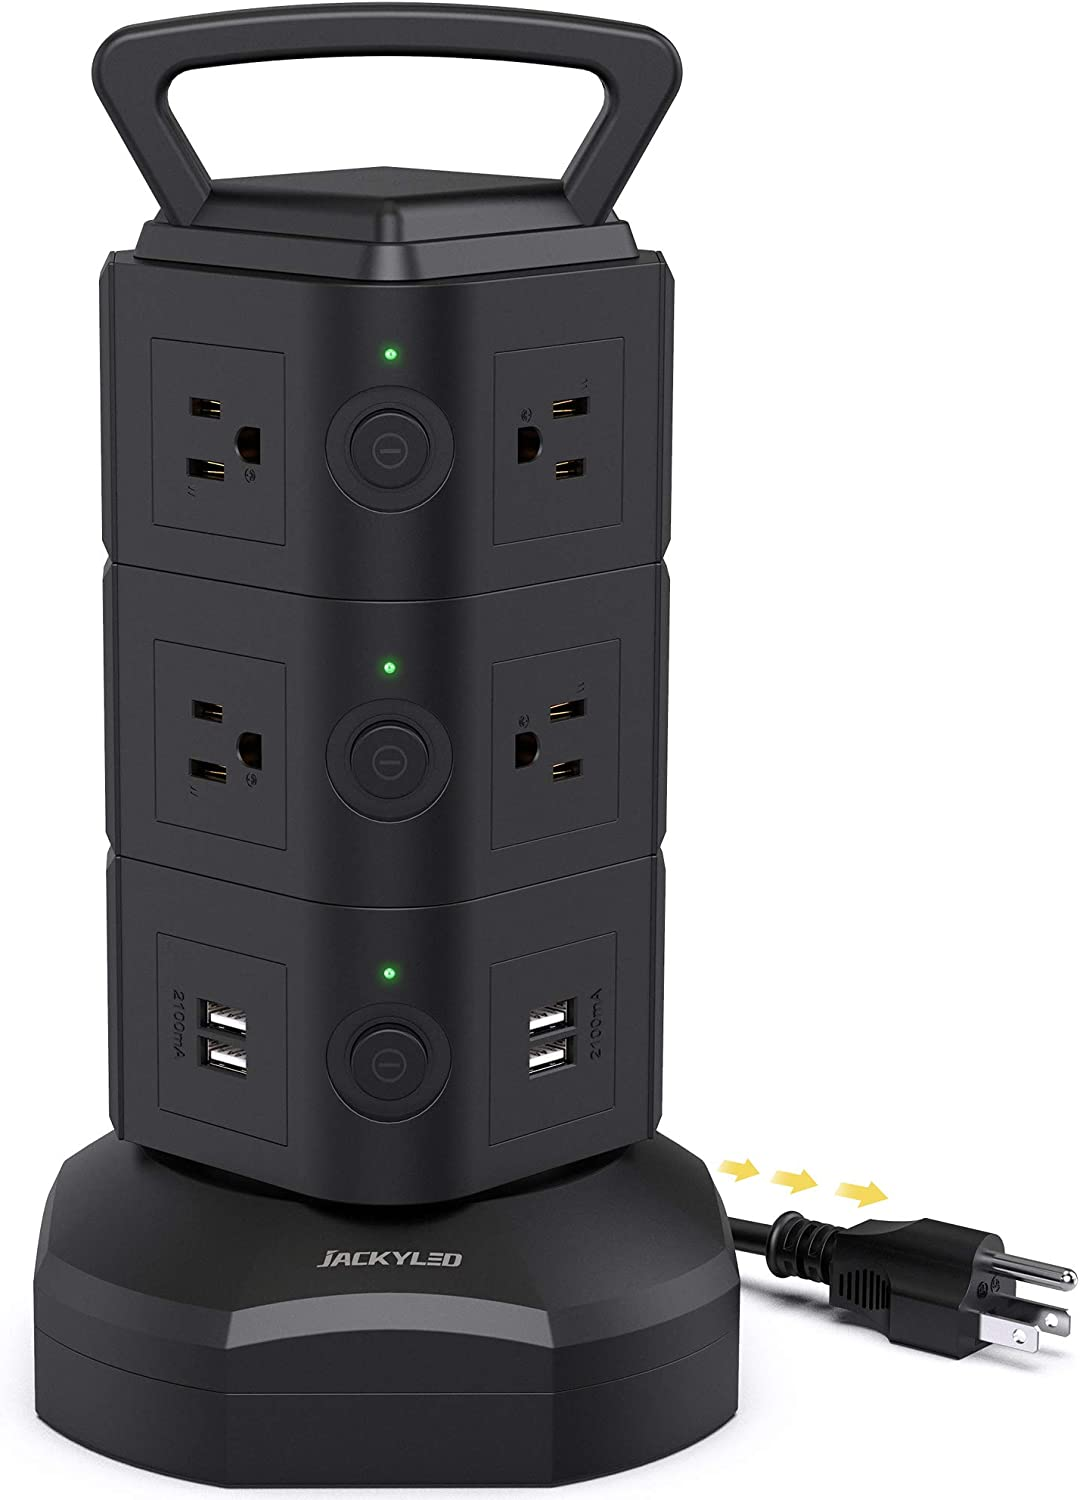 9.8ft Power Strip Tower JACKYLED Surge Protector Electric Charging Station with 13A 10 AC 4 USB Ports Heavy Duty Extension Cord for Home Office Computer Nightstand Laptop Phone Black